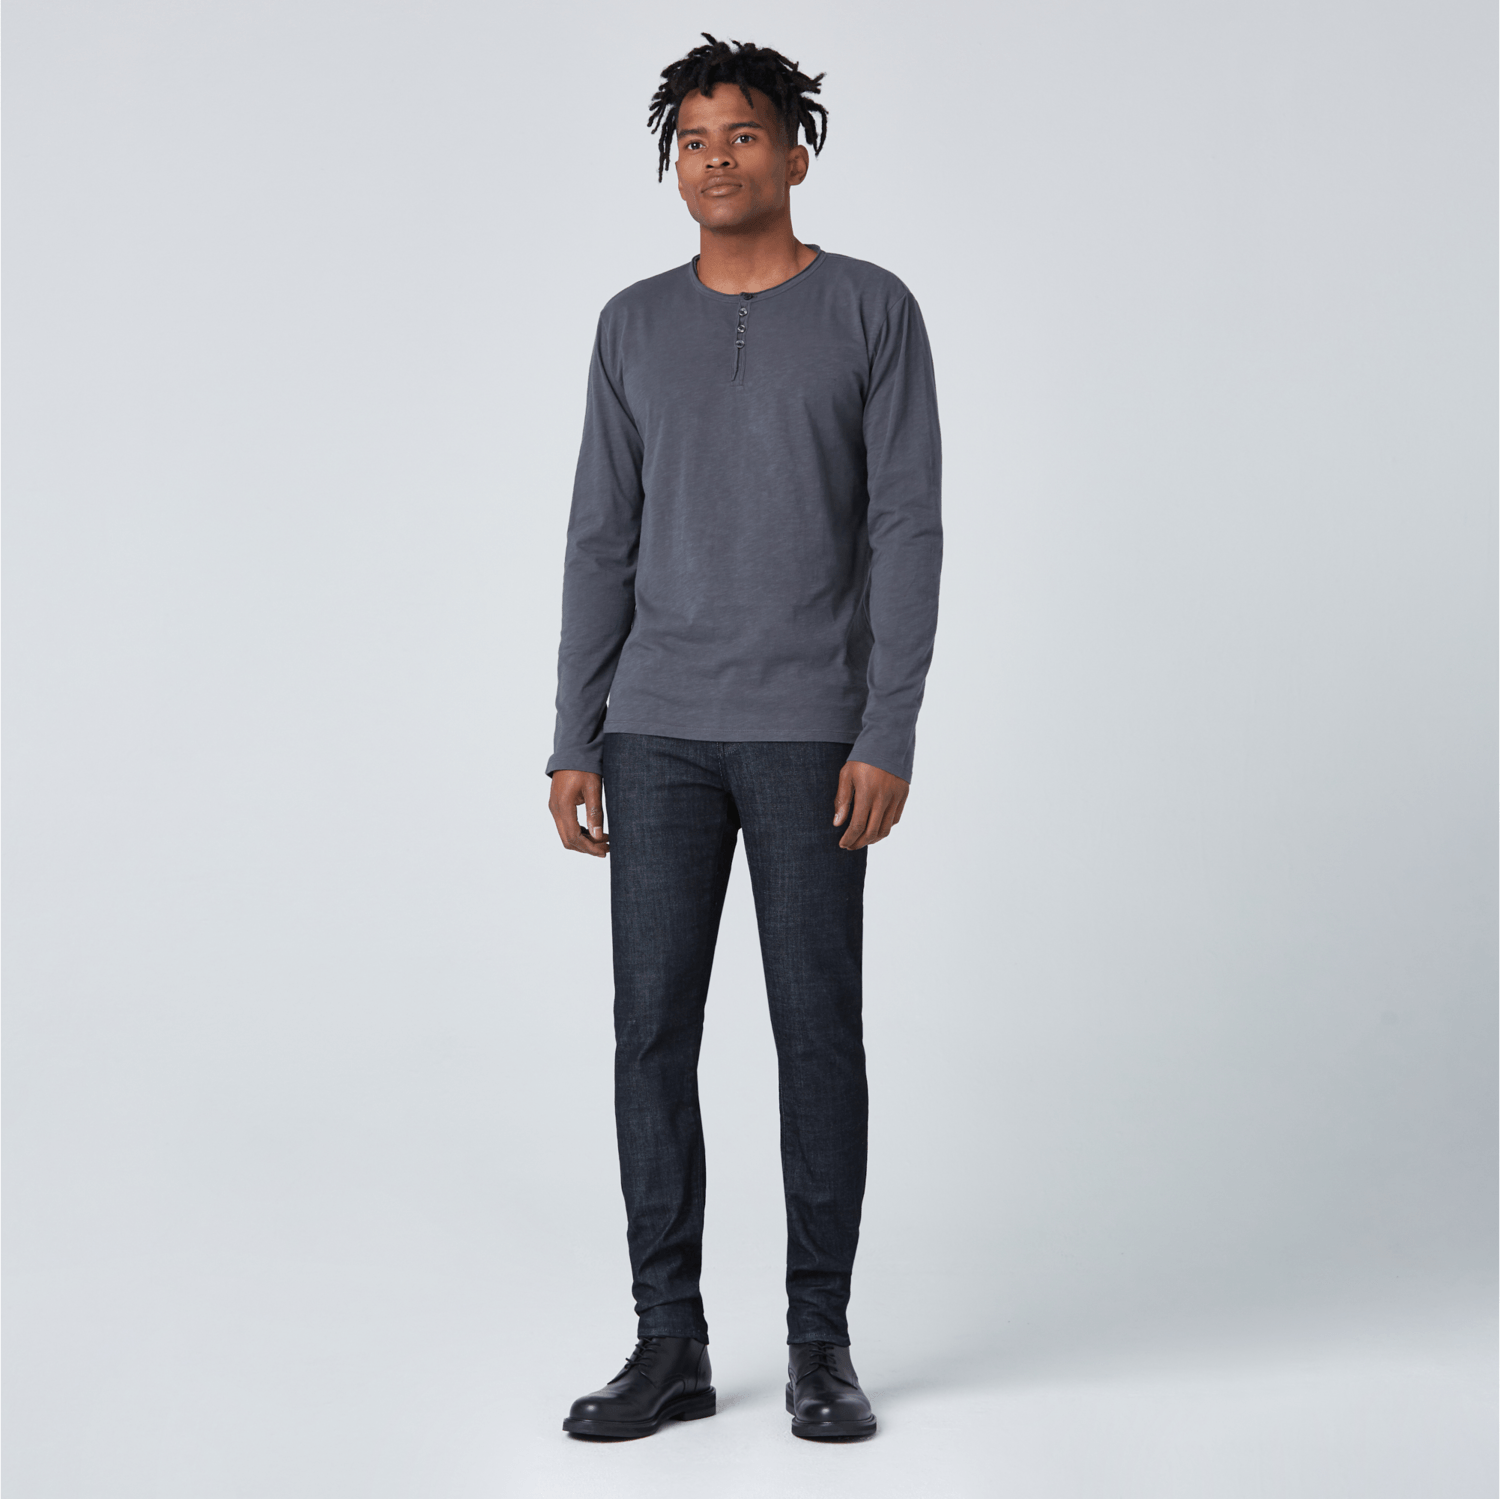 Modern Crew Henley / Neighborhood Goods